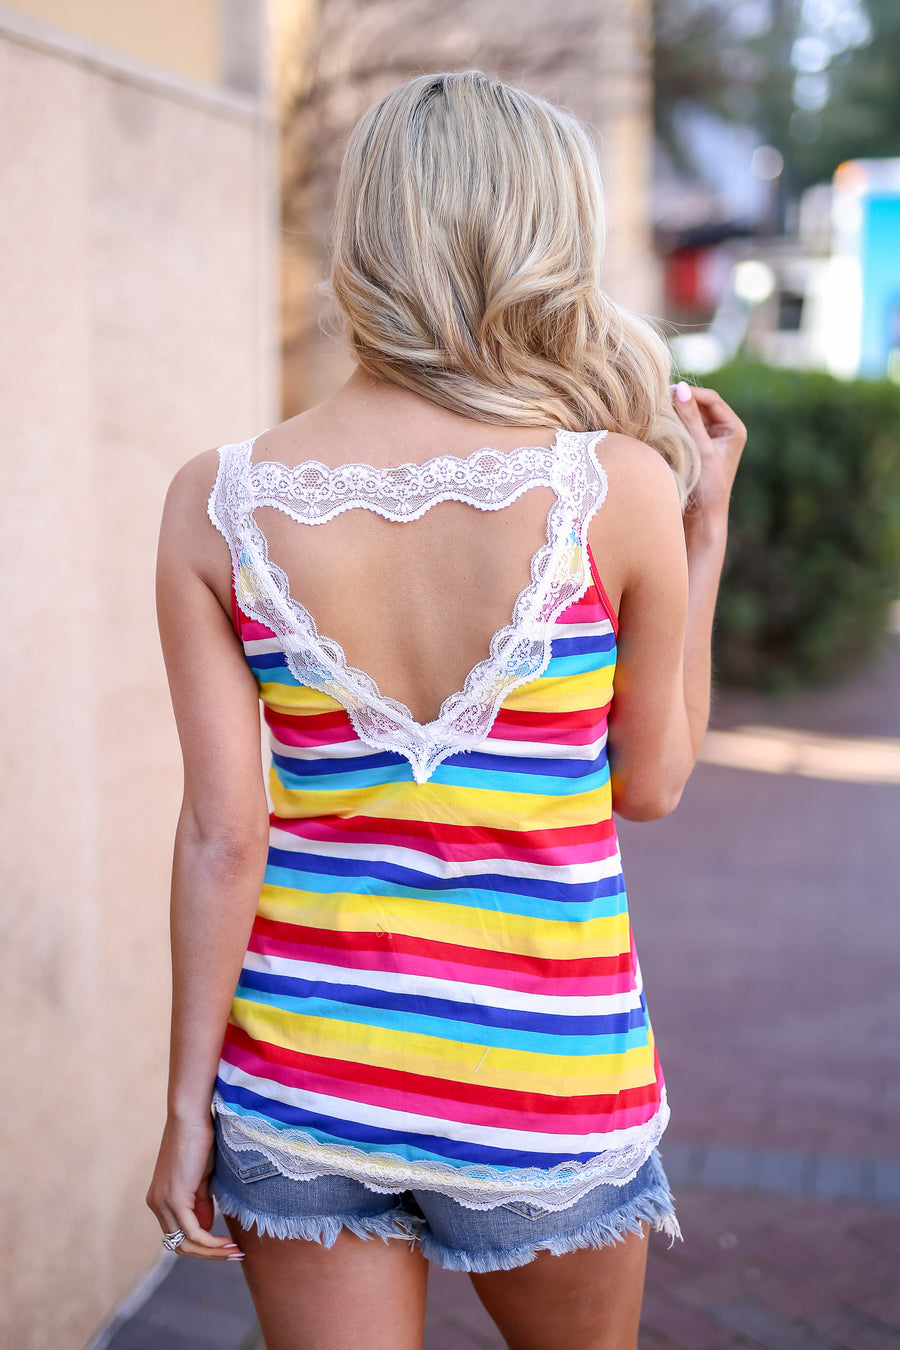 Your Future Is Bright Striped Cami - Multi women's colorful lace camisole, Closet Candy Boutique 1